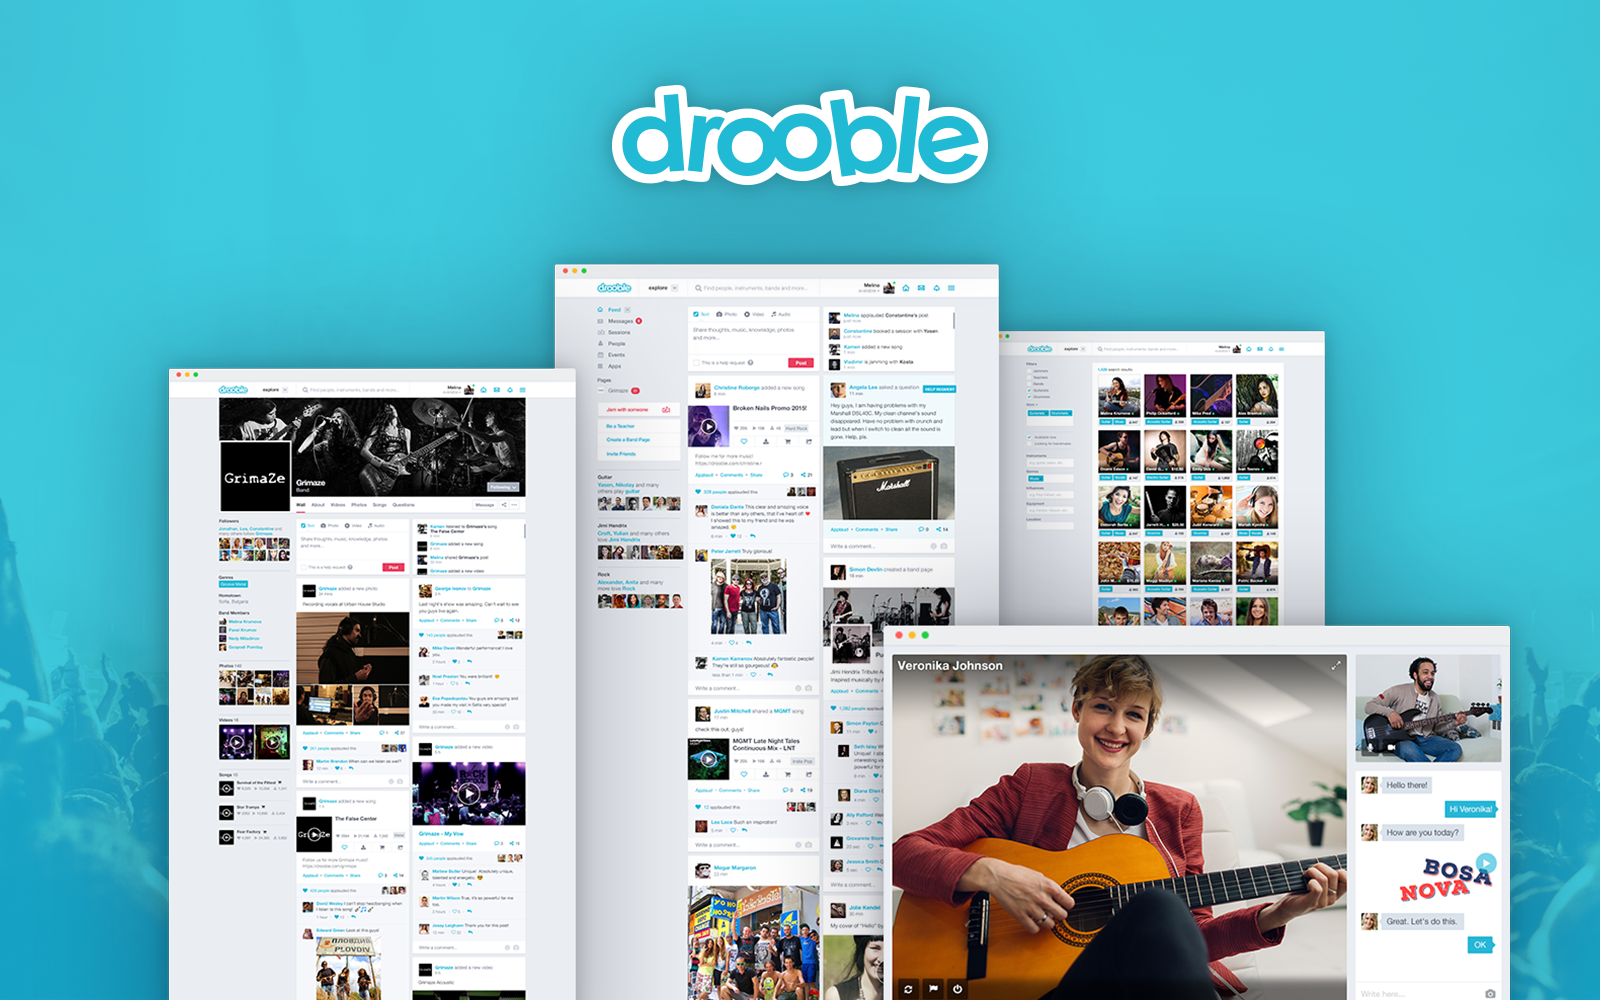 A NEW PLATFORM FOR MEMBERS OF THE INTERNATIONAL MUSIC COMMUNITY